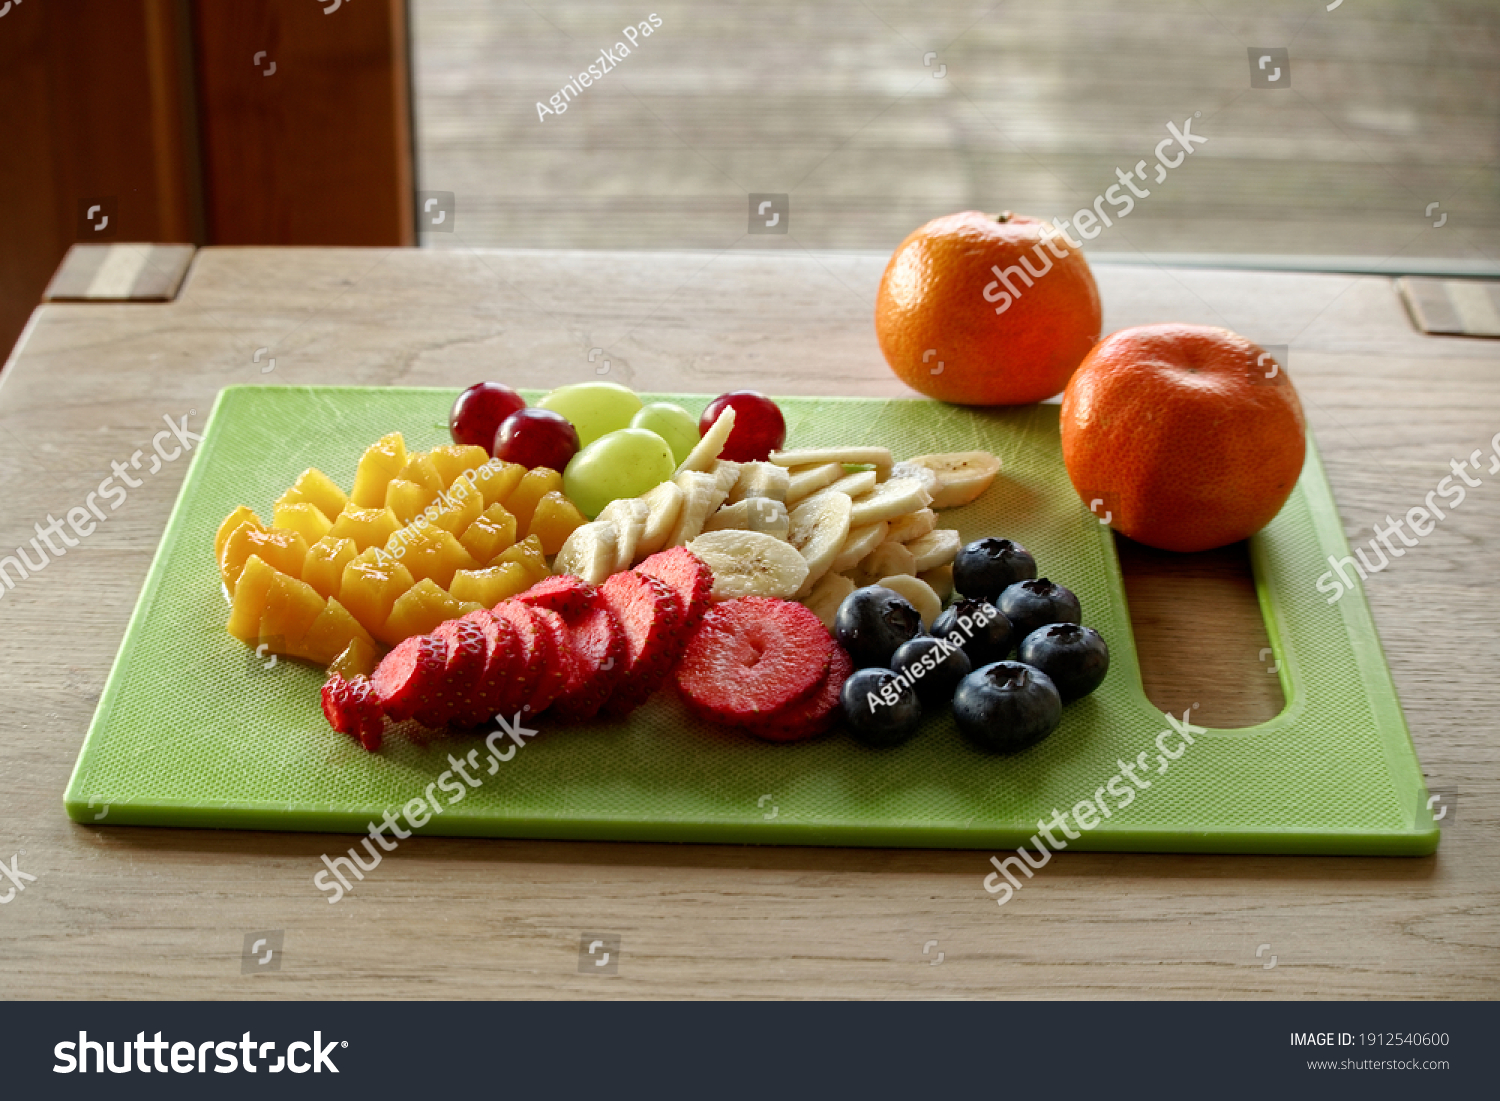 Sliced fruits on cutting board on a wooden table. Healthy, fresh and colorful ingredients for fruit salad or breakfast. Bright colors. View from above. Selective focus.